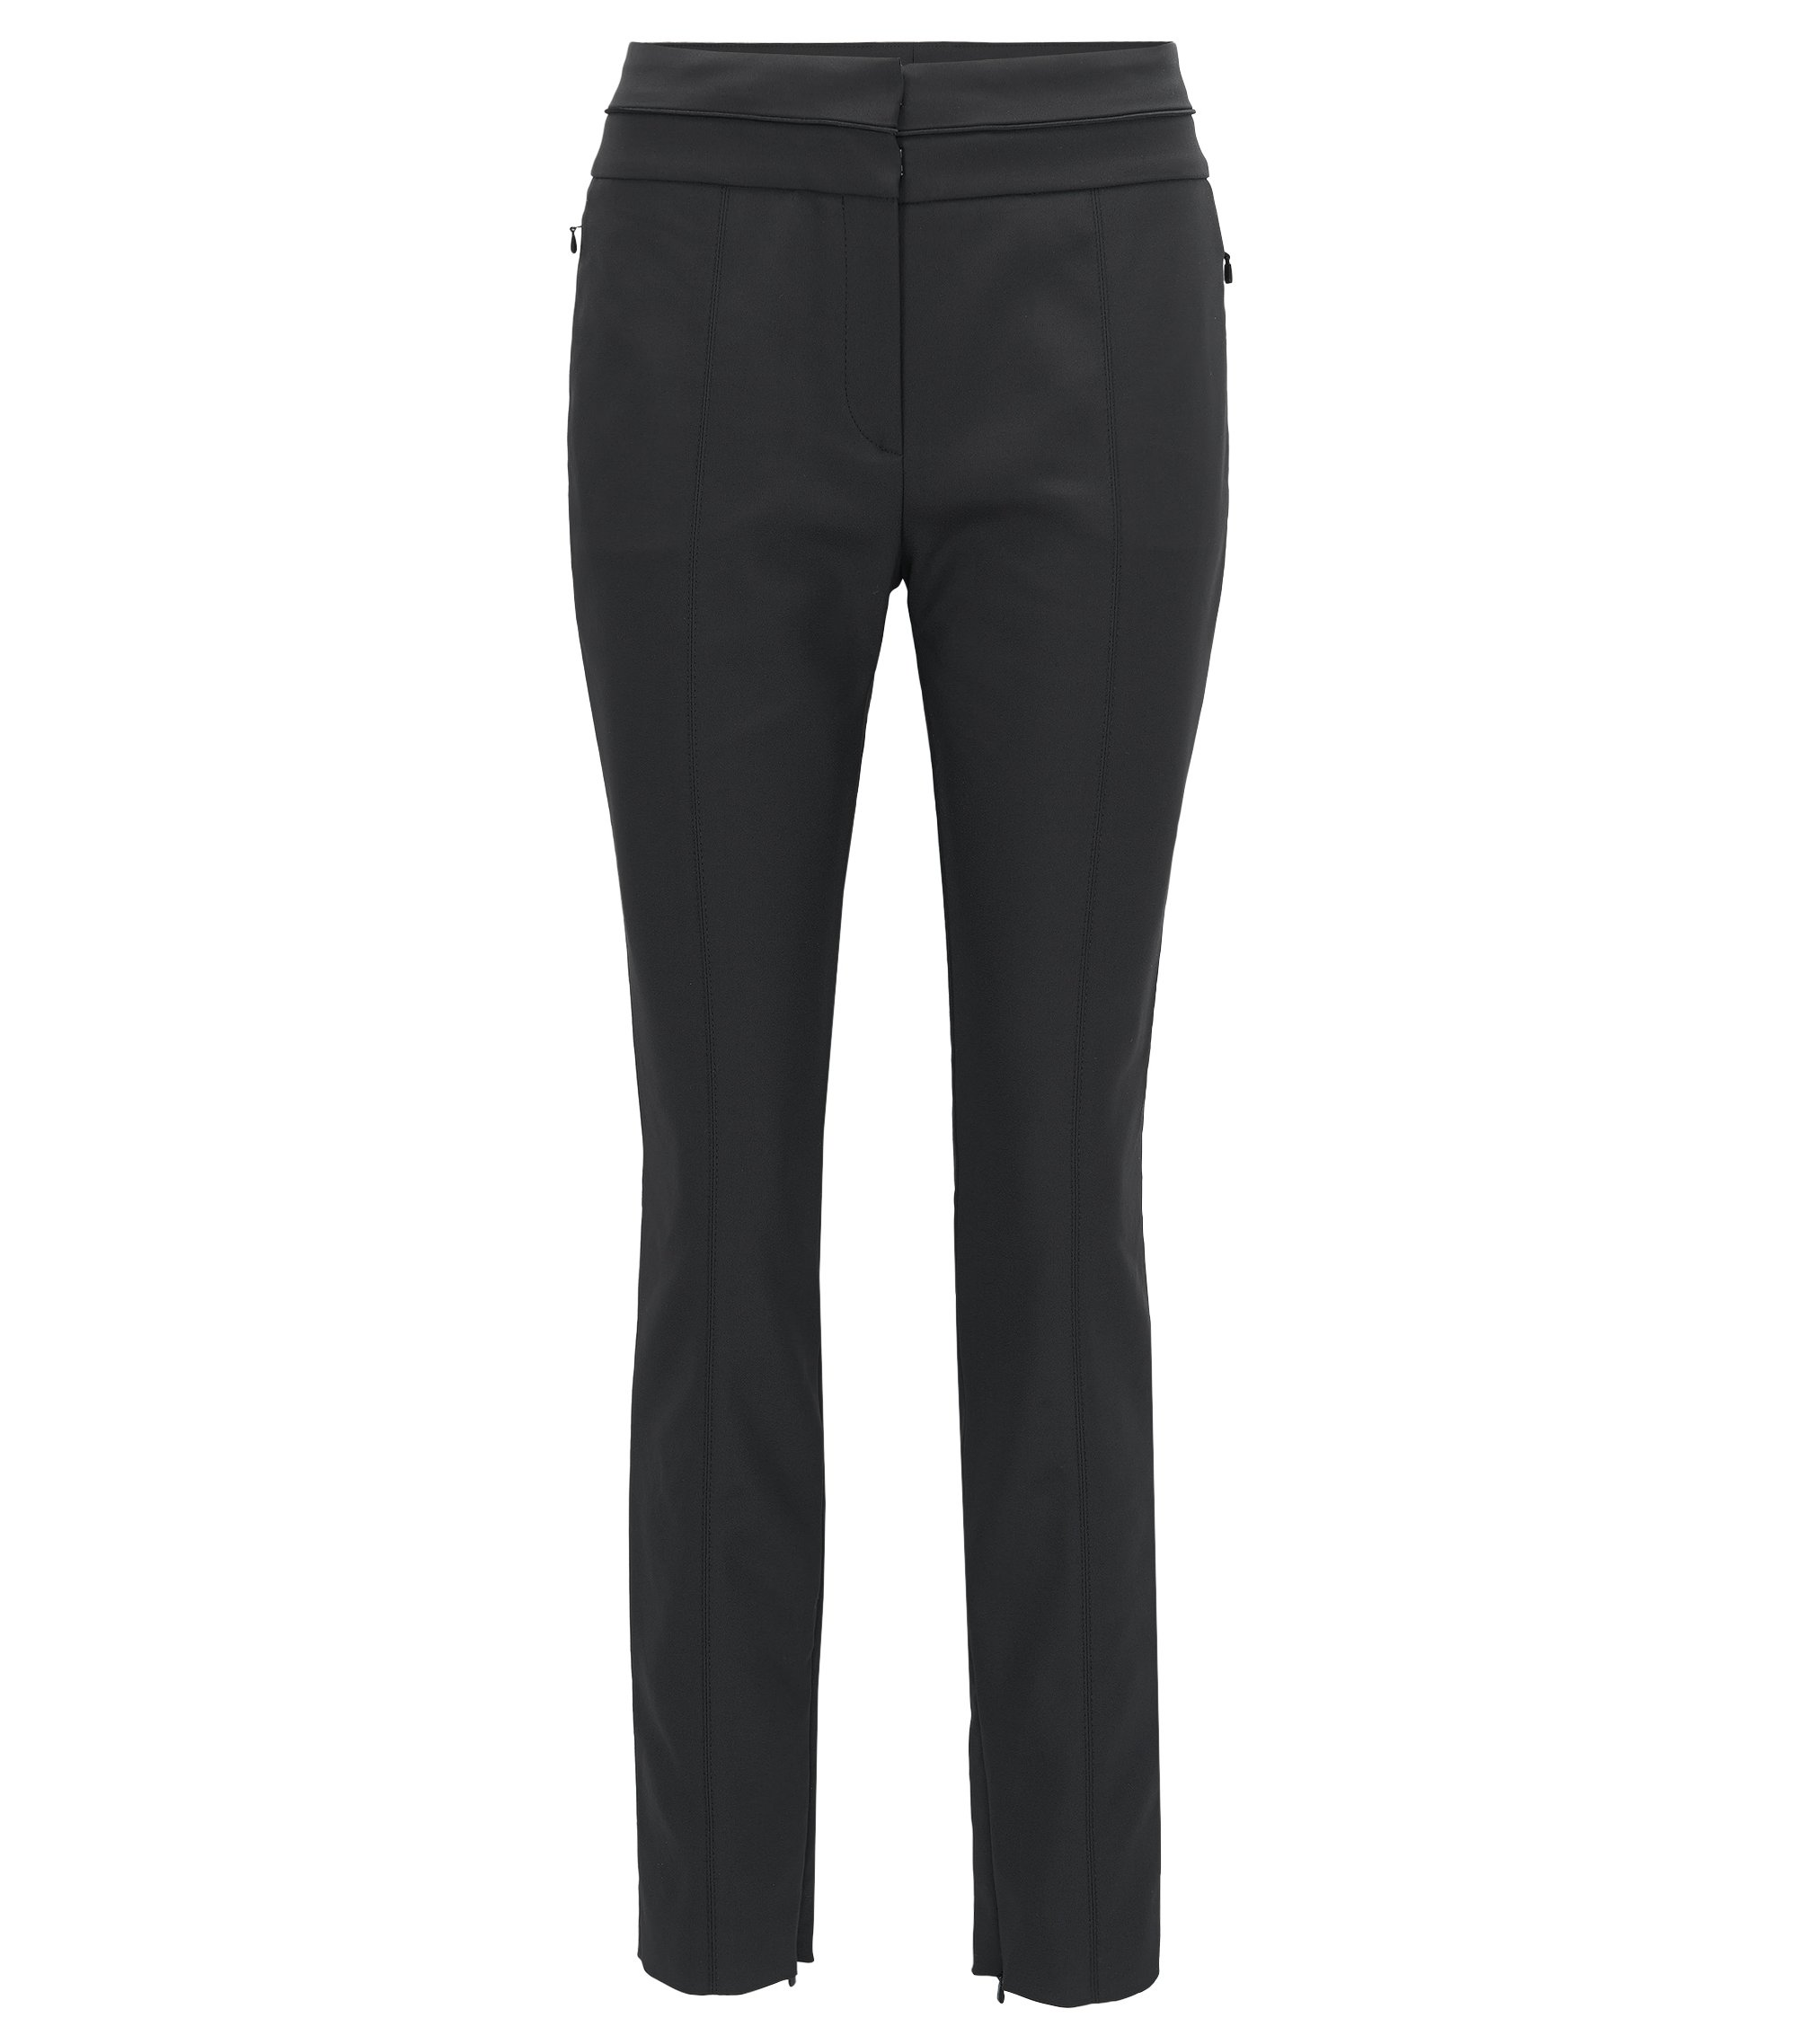 Pantalon Slim Fit en tissu technique stretch, Noir